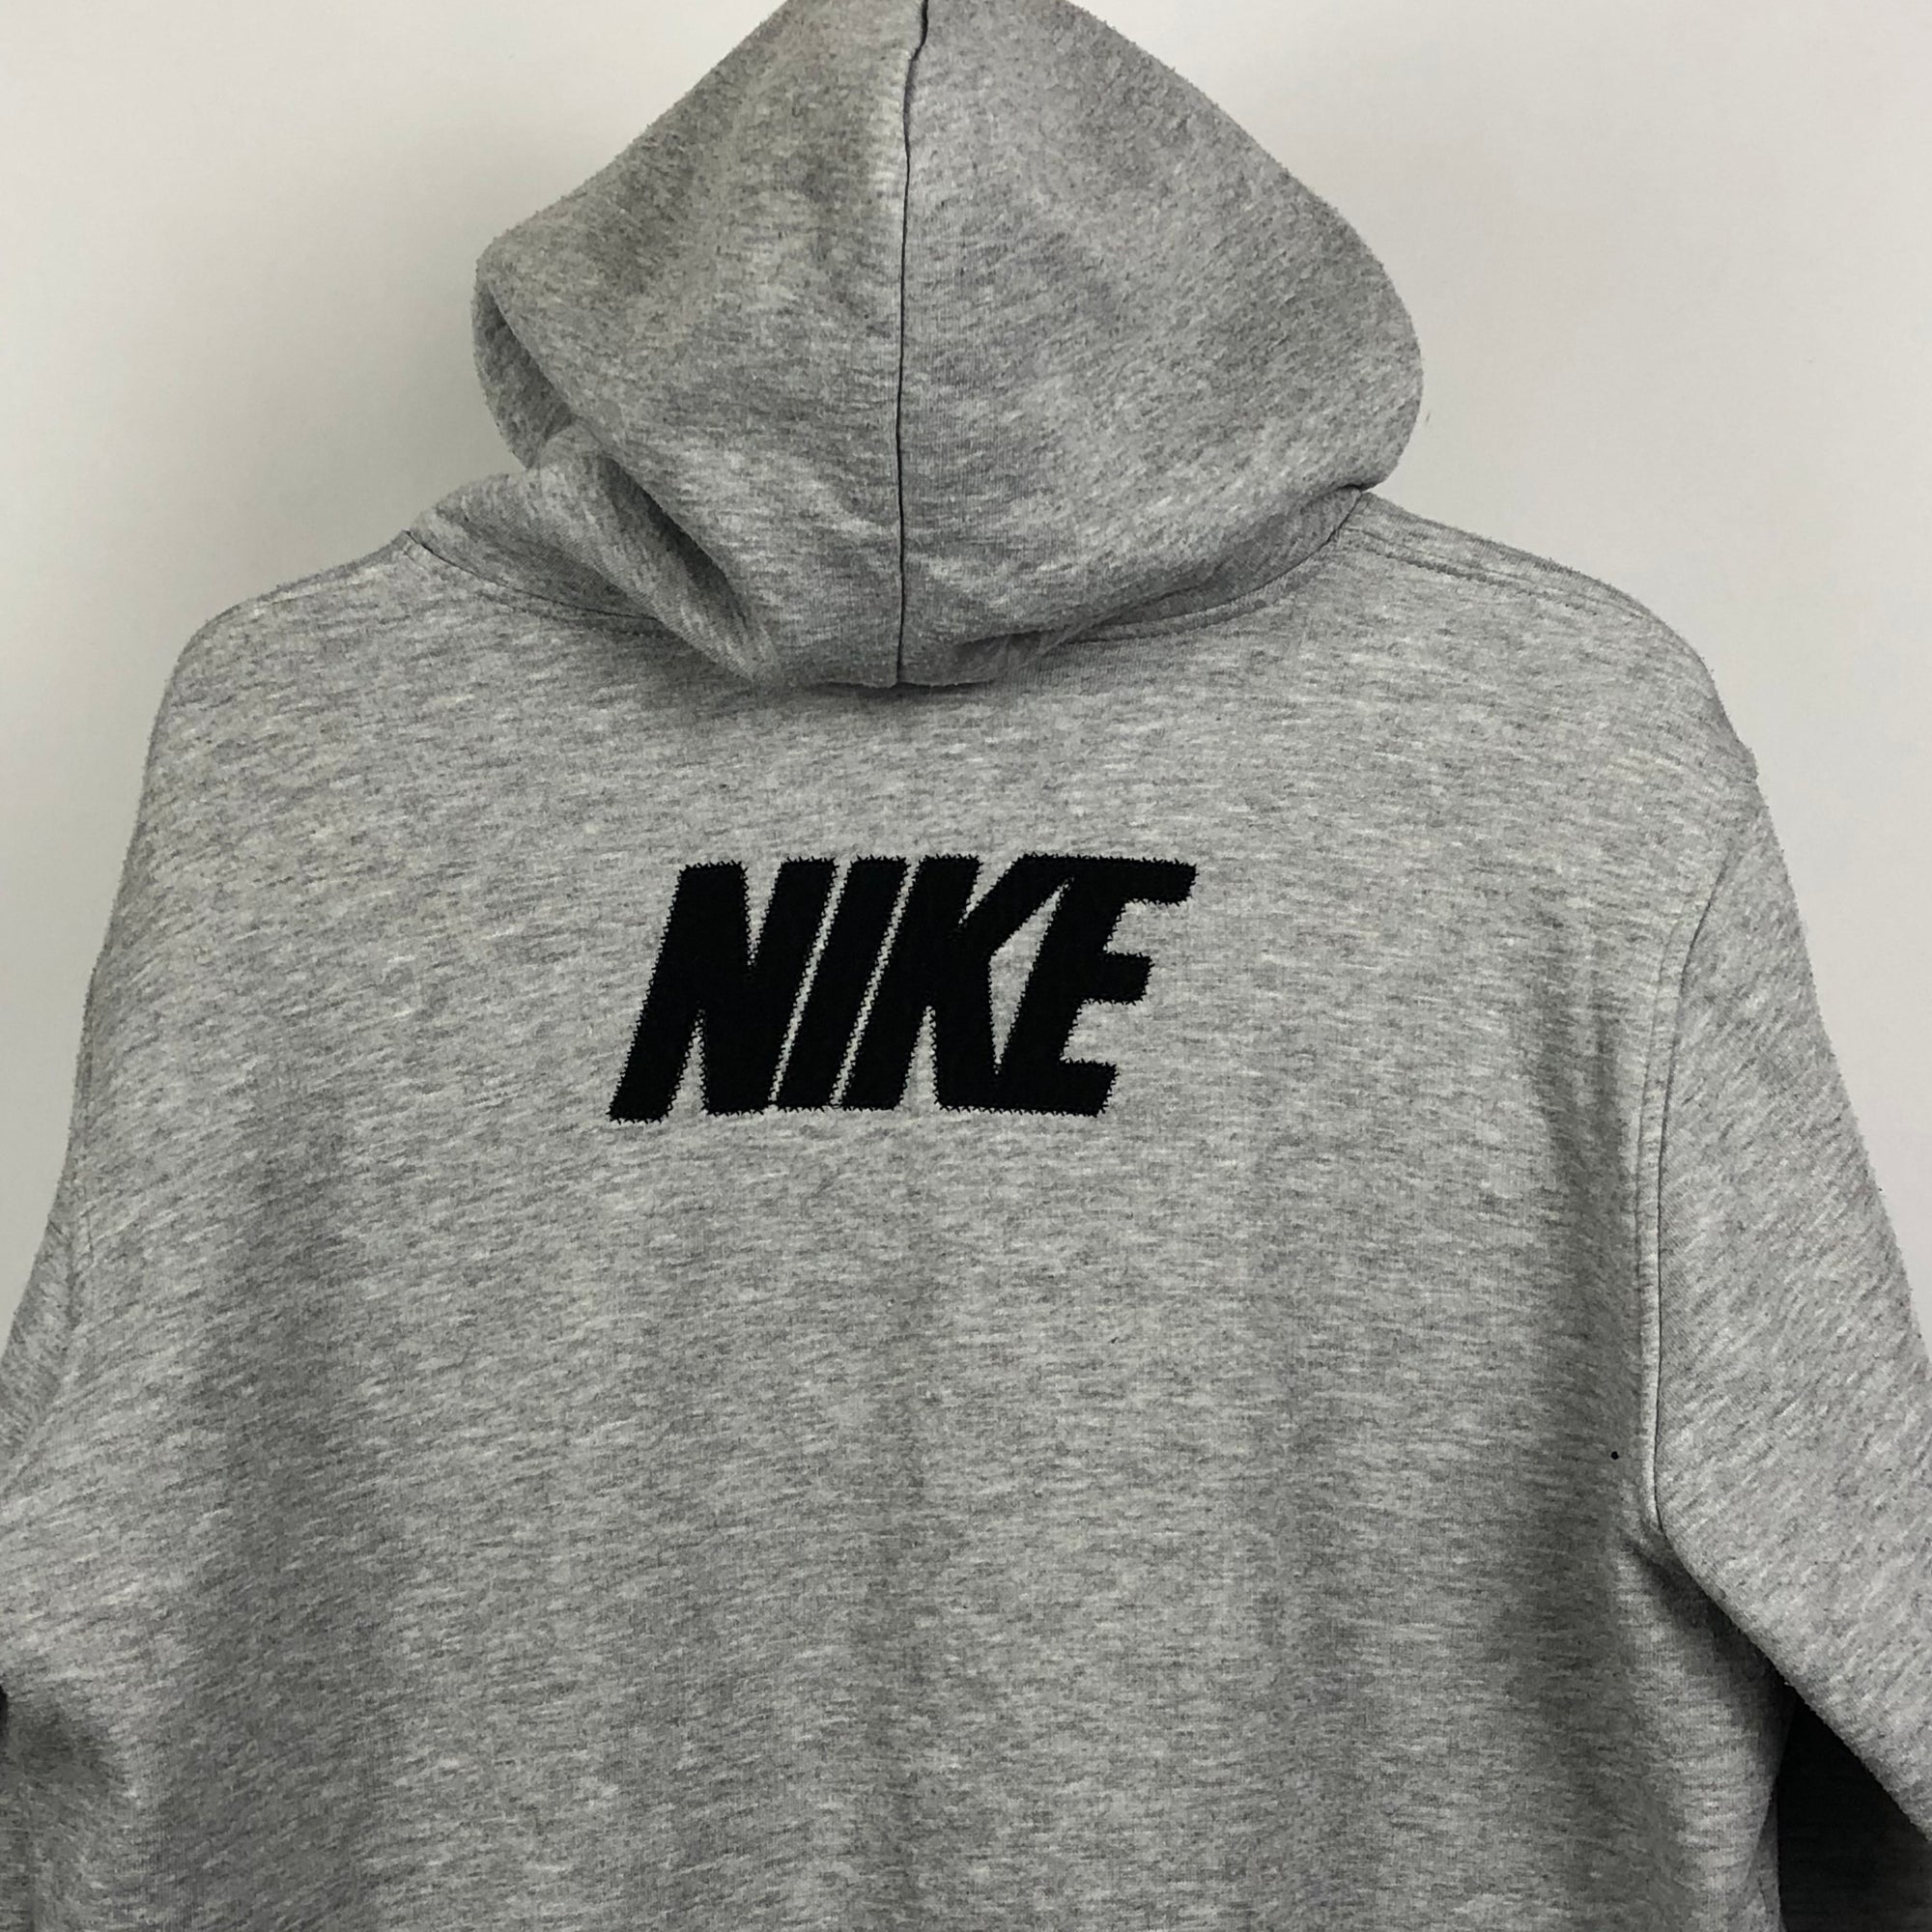 Nike Spellout Hoodie in Grey - Men's Large/Women's XL